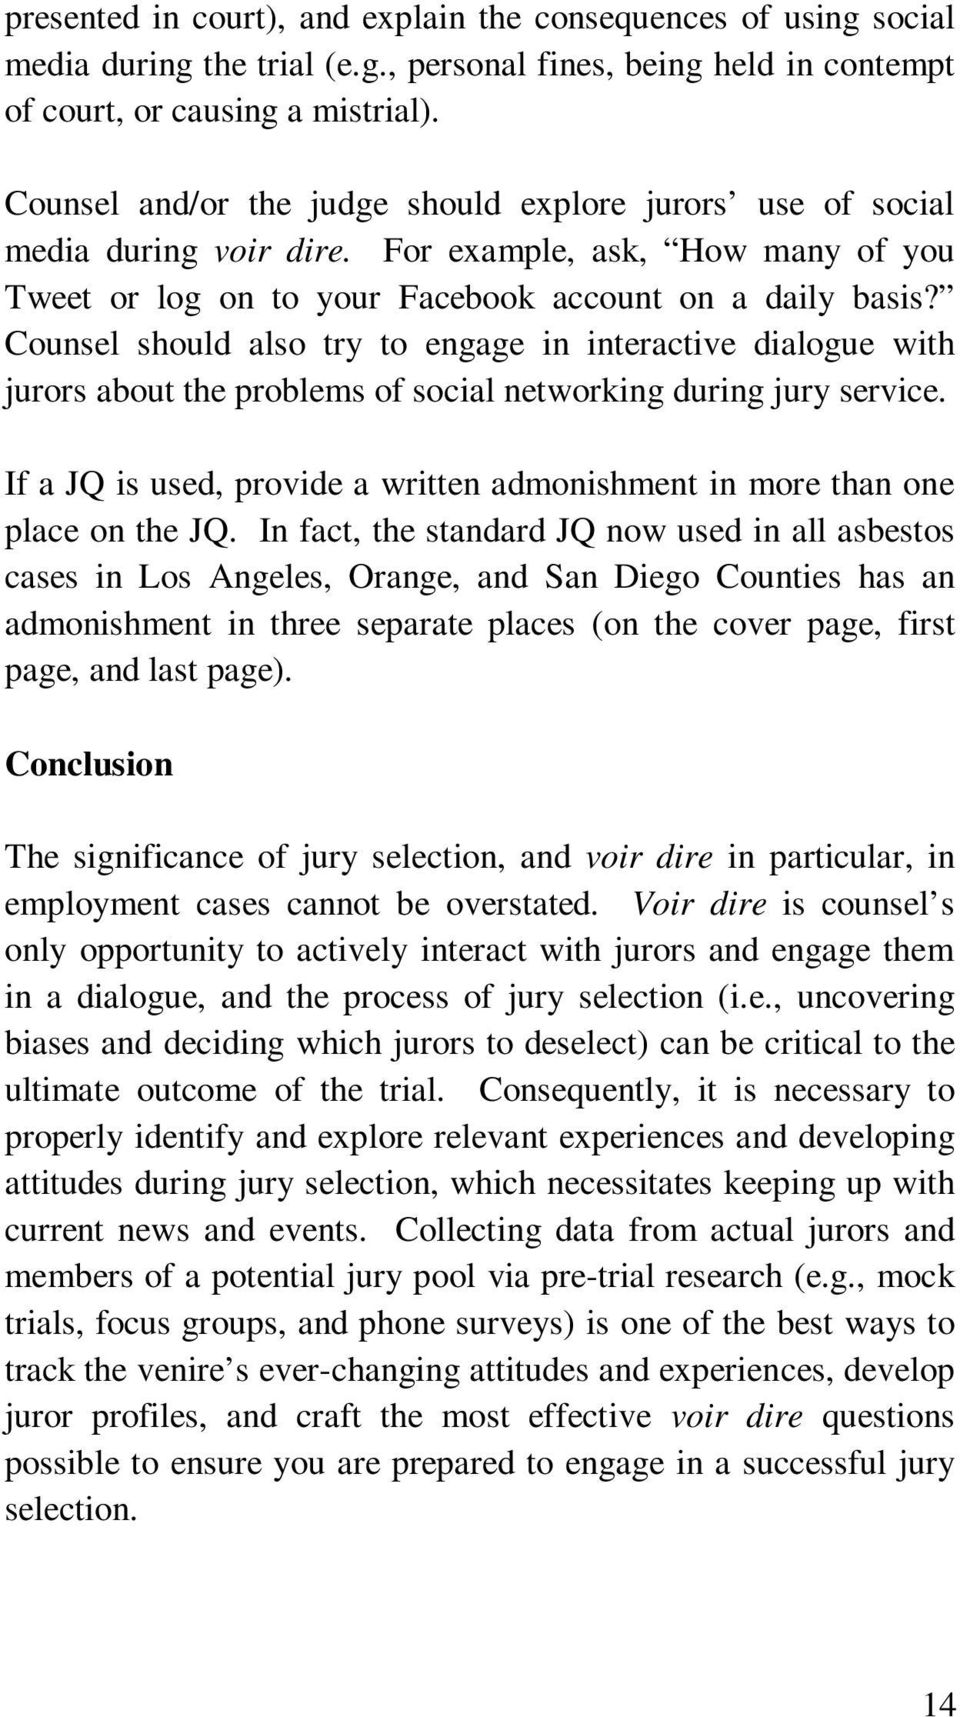 Counsel should also try to engage in interactive dialogue with jurors about the problems of social networking during jury service.